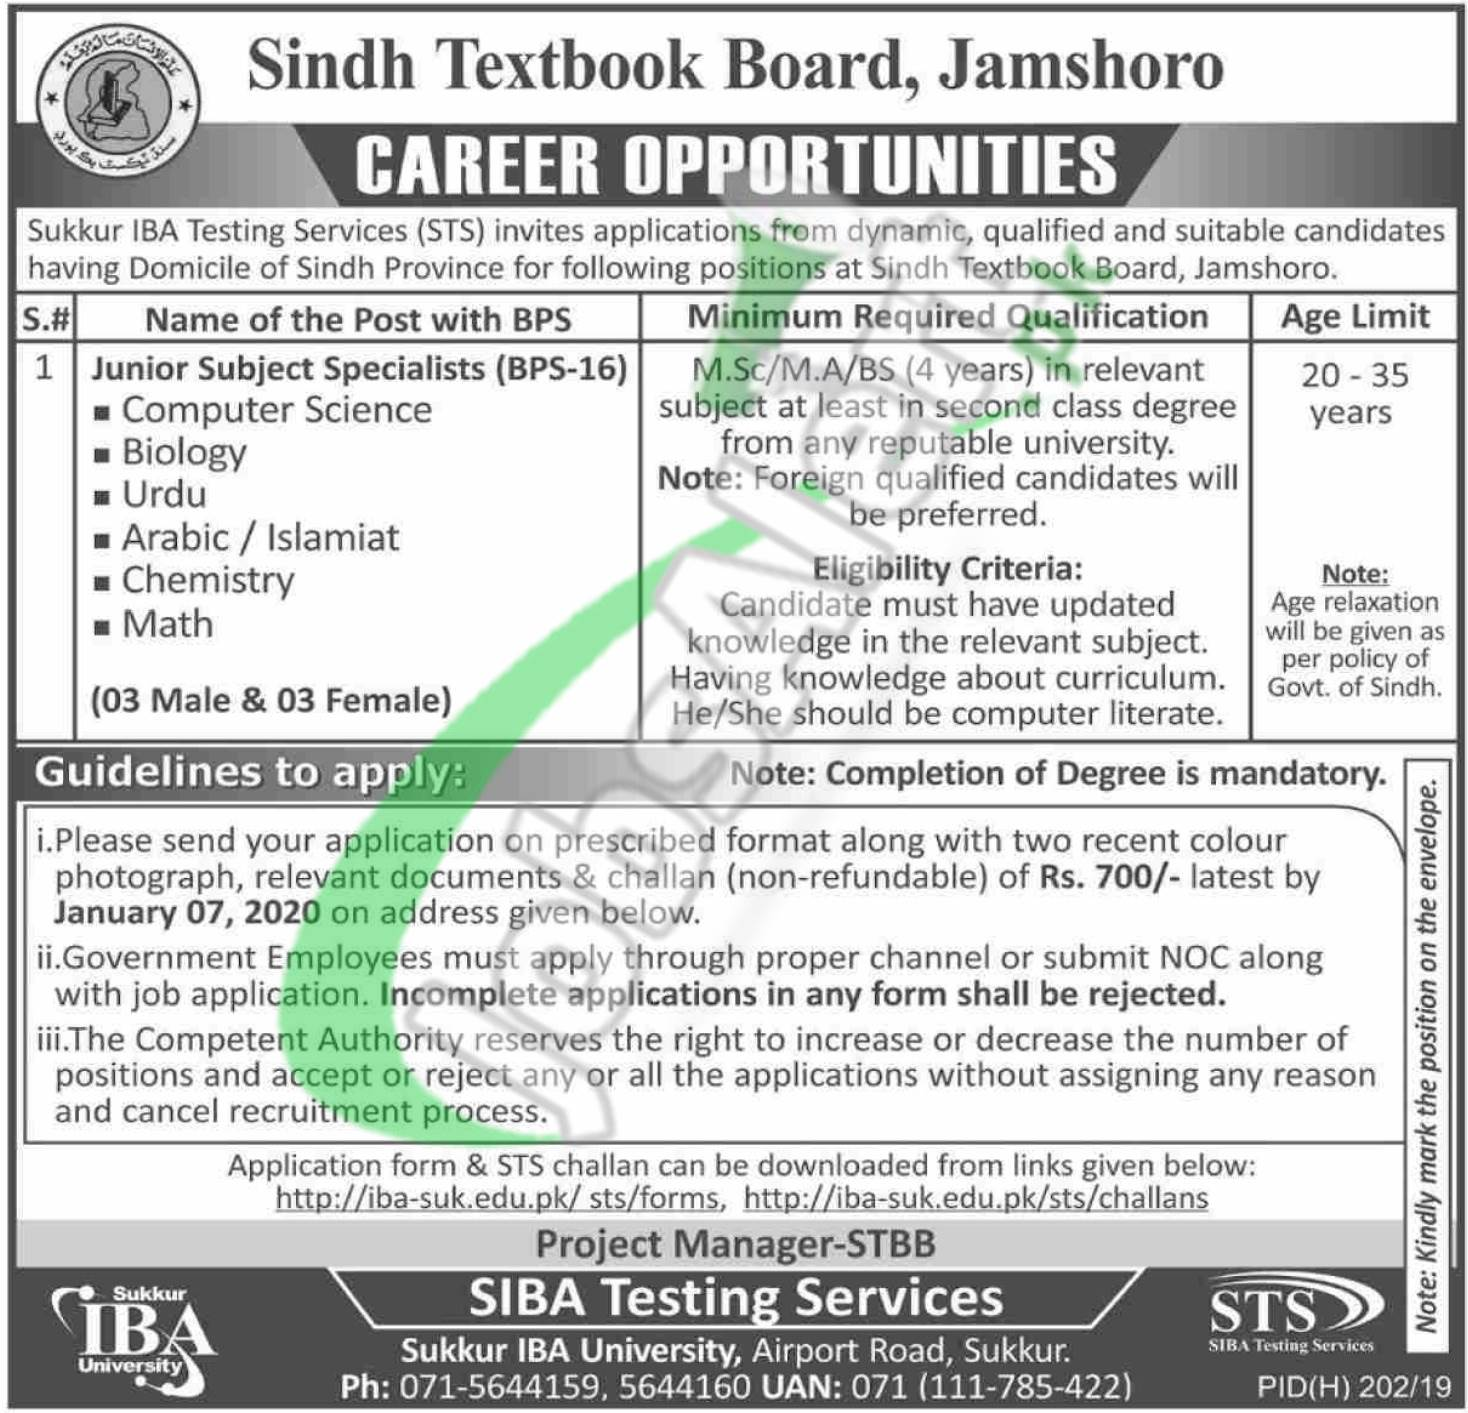 Sindh Textbook Board Career Opportunities